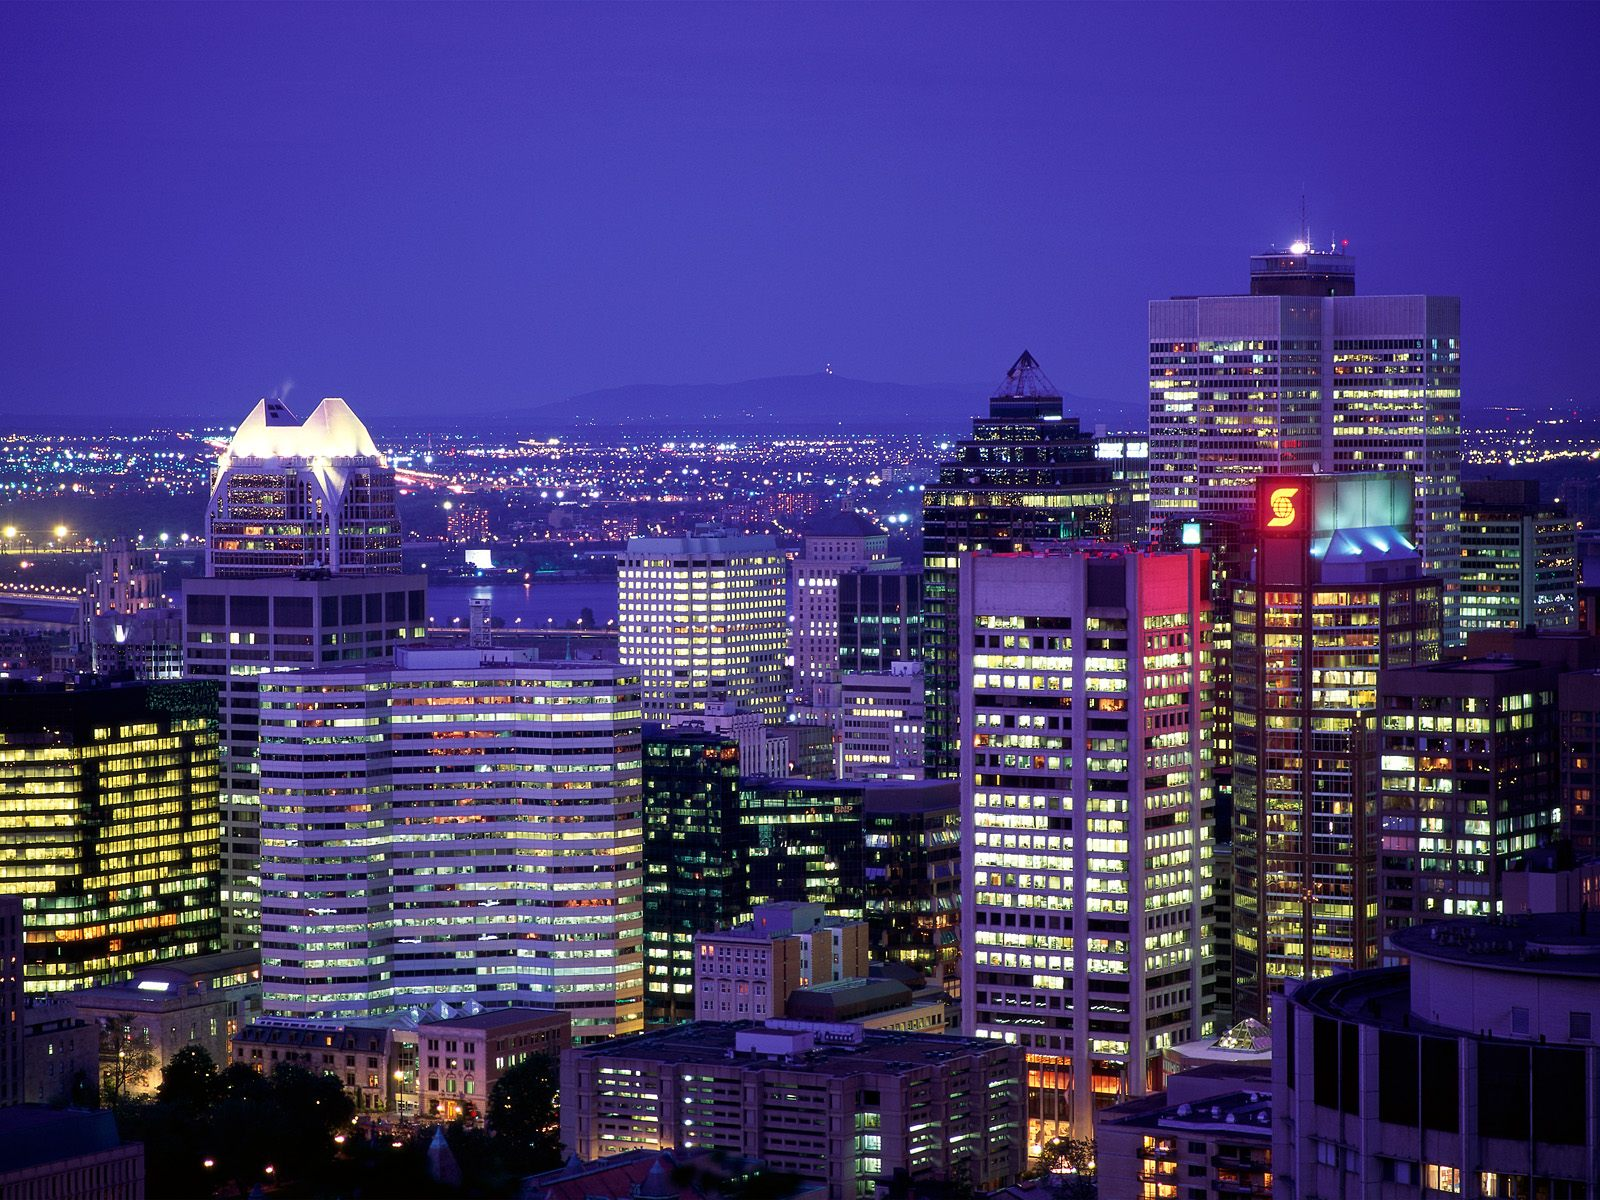 City Lights of Montreal, Quebec